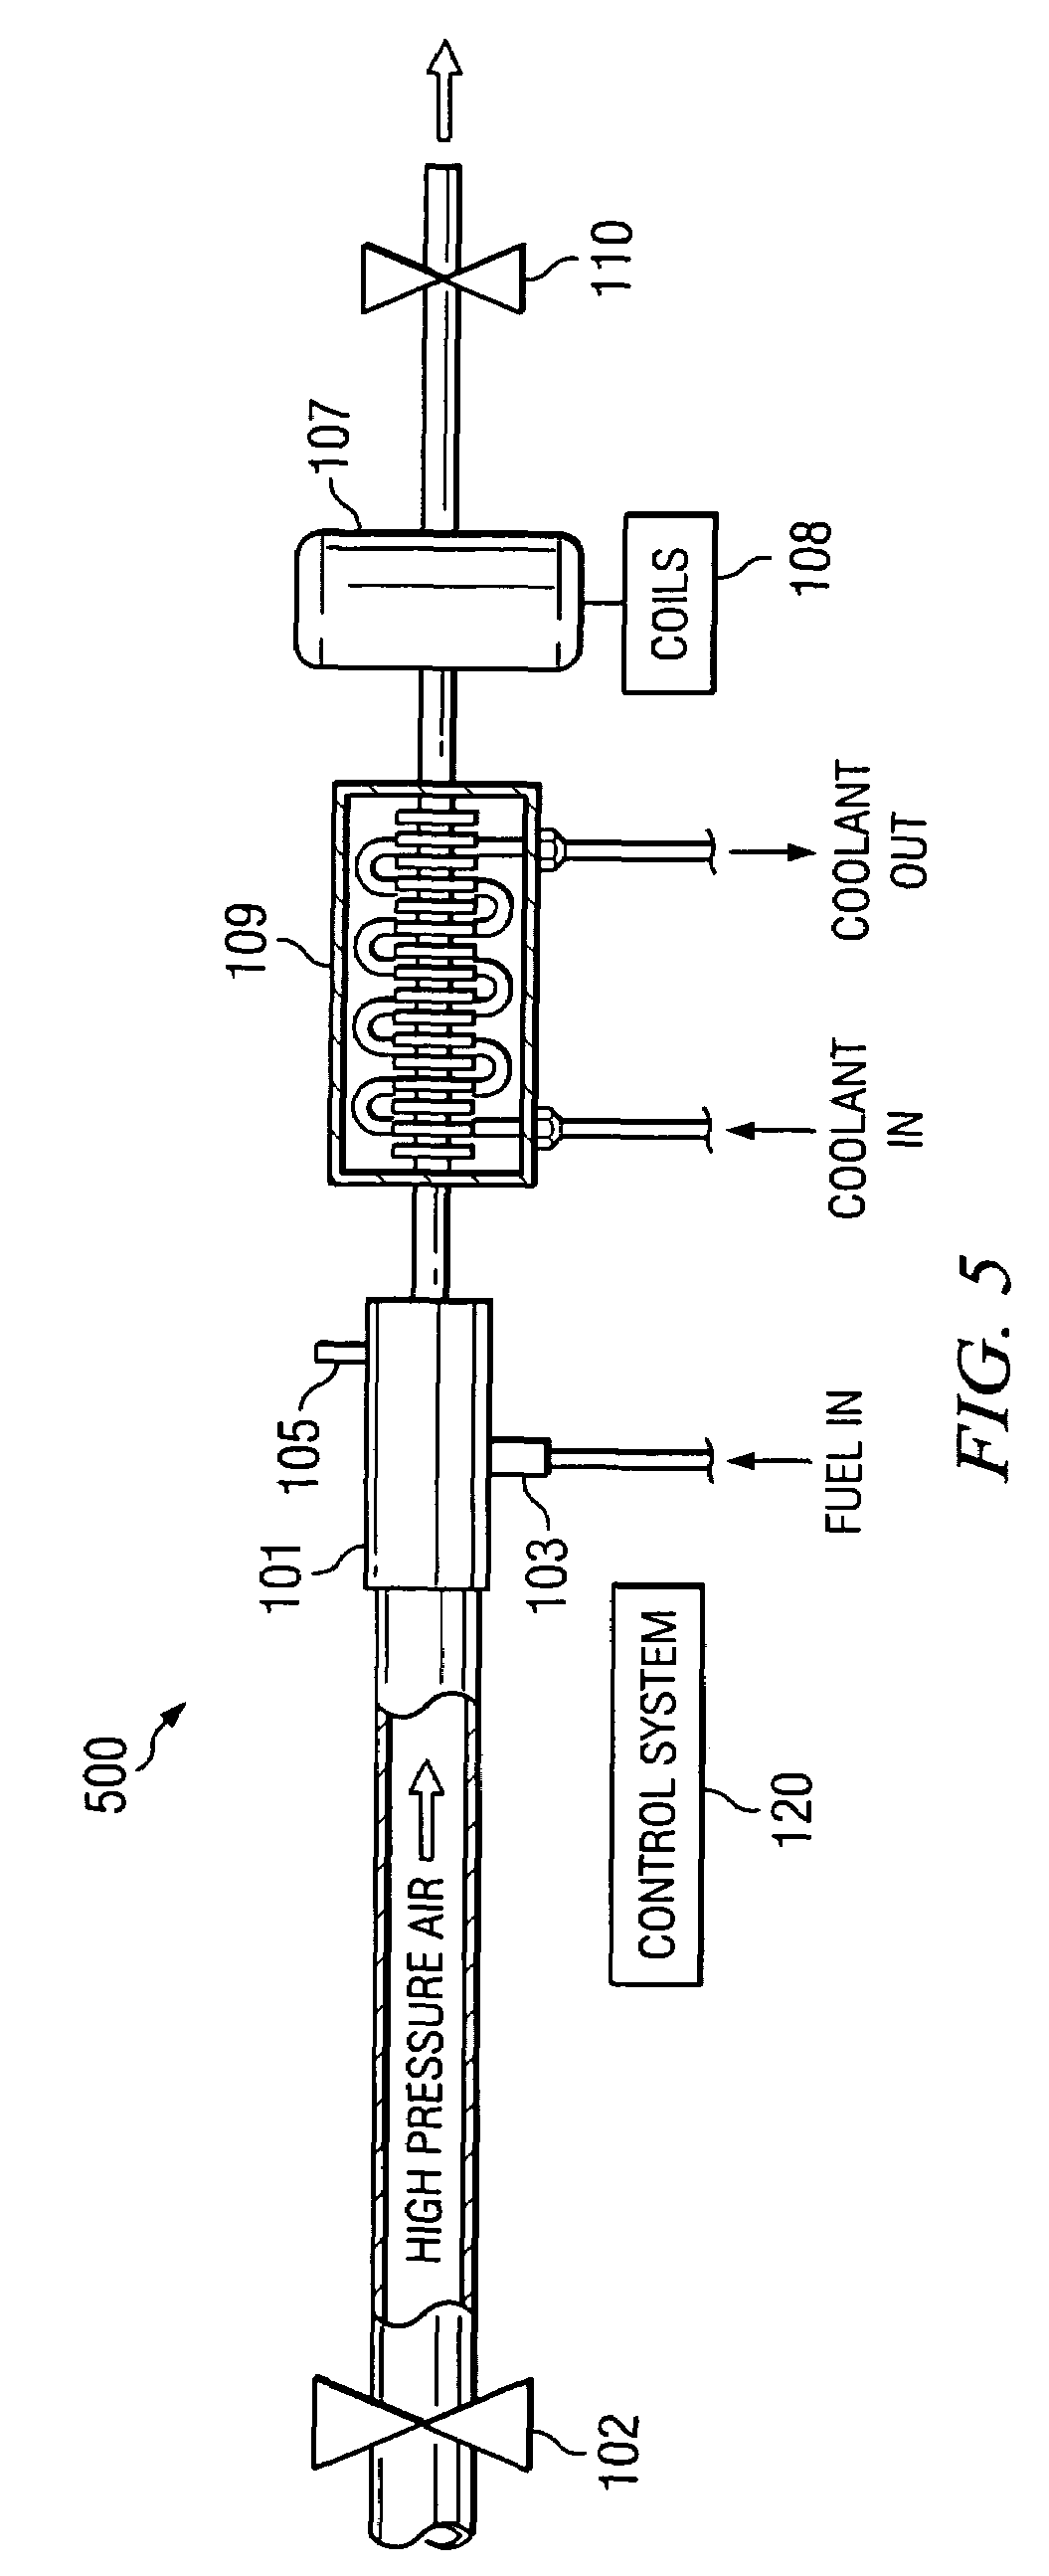 patent us7495447 - benchtop test system for testing spark plug durability